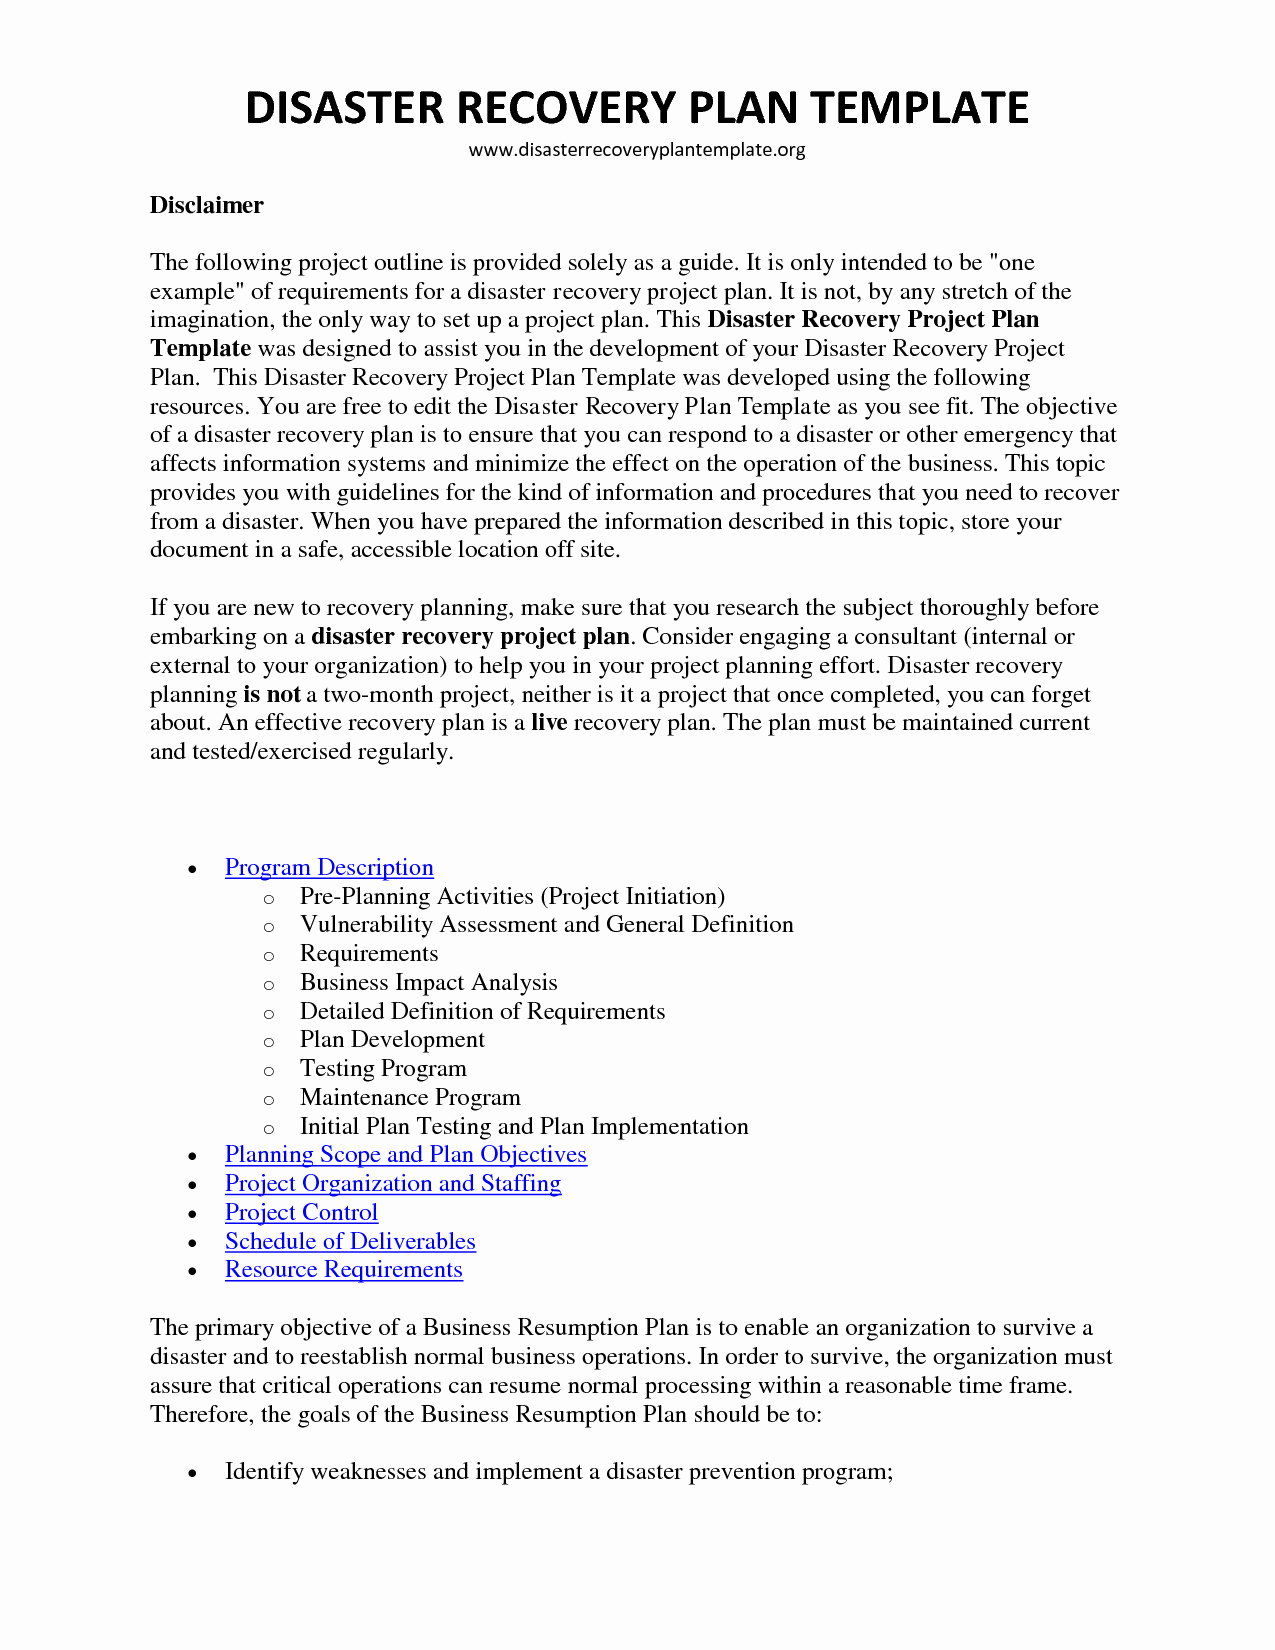 Disaster Recovery Plan Template Nist Elegant Example A Disaster Recovery Plan All Disaster